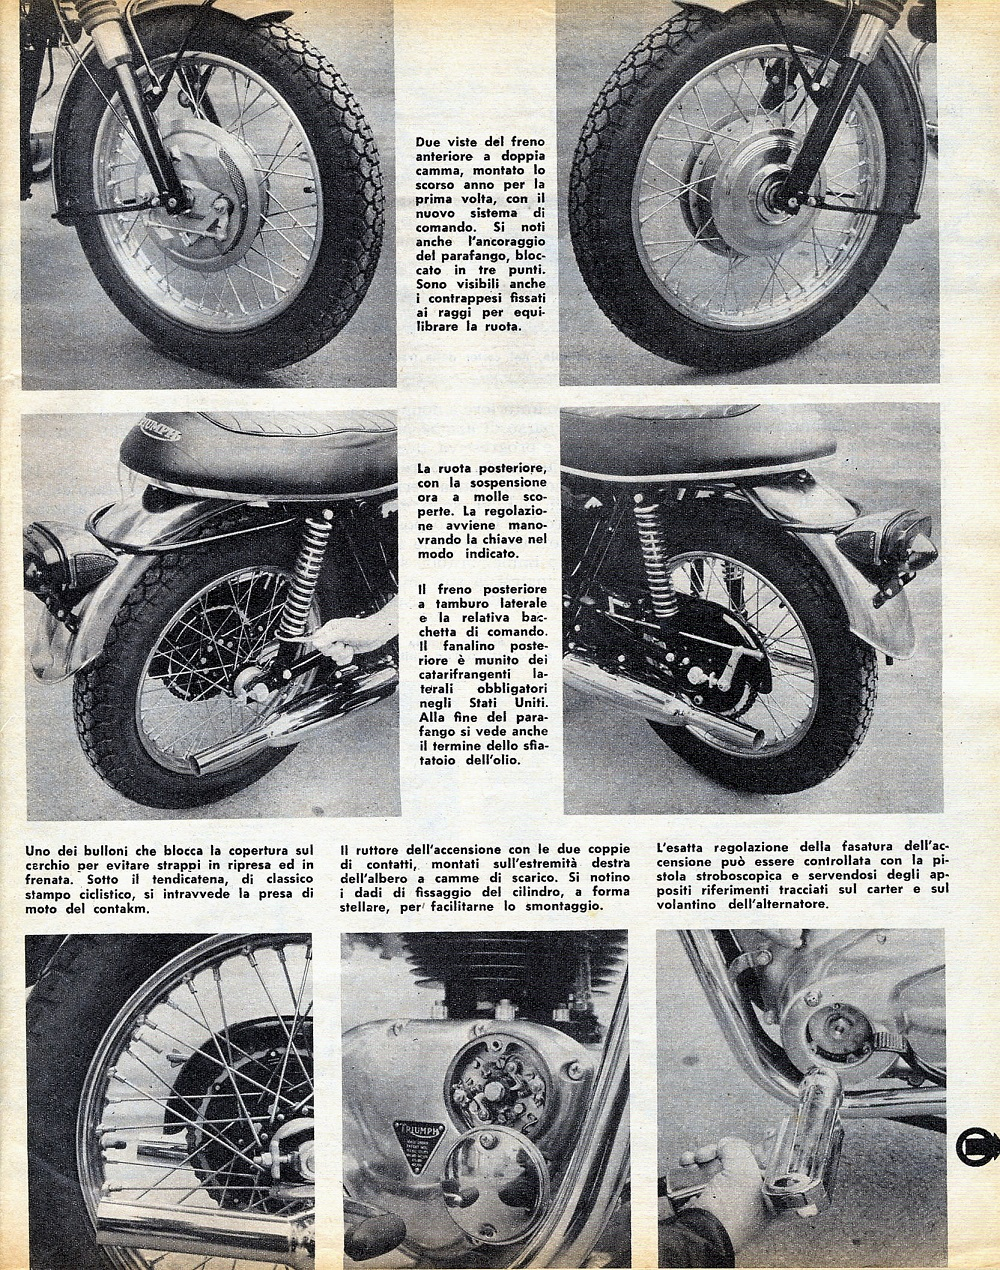 1969 Triumph Bonneville road test. 10.jpg